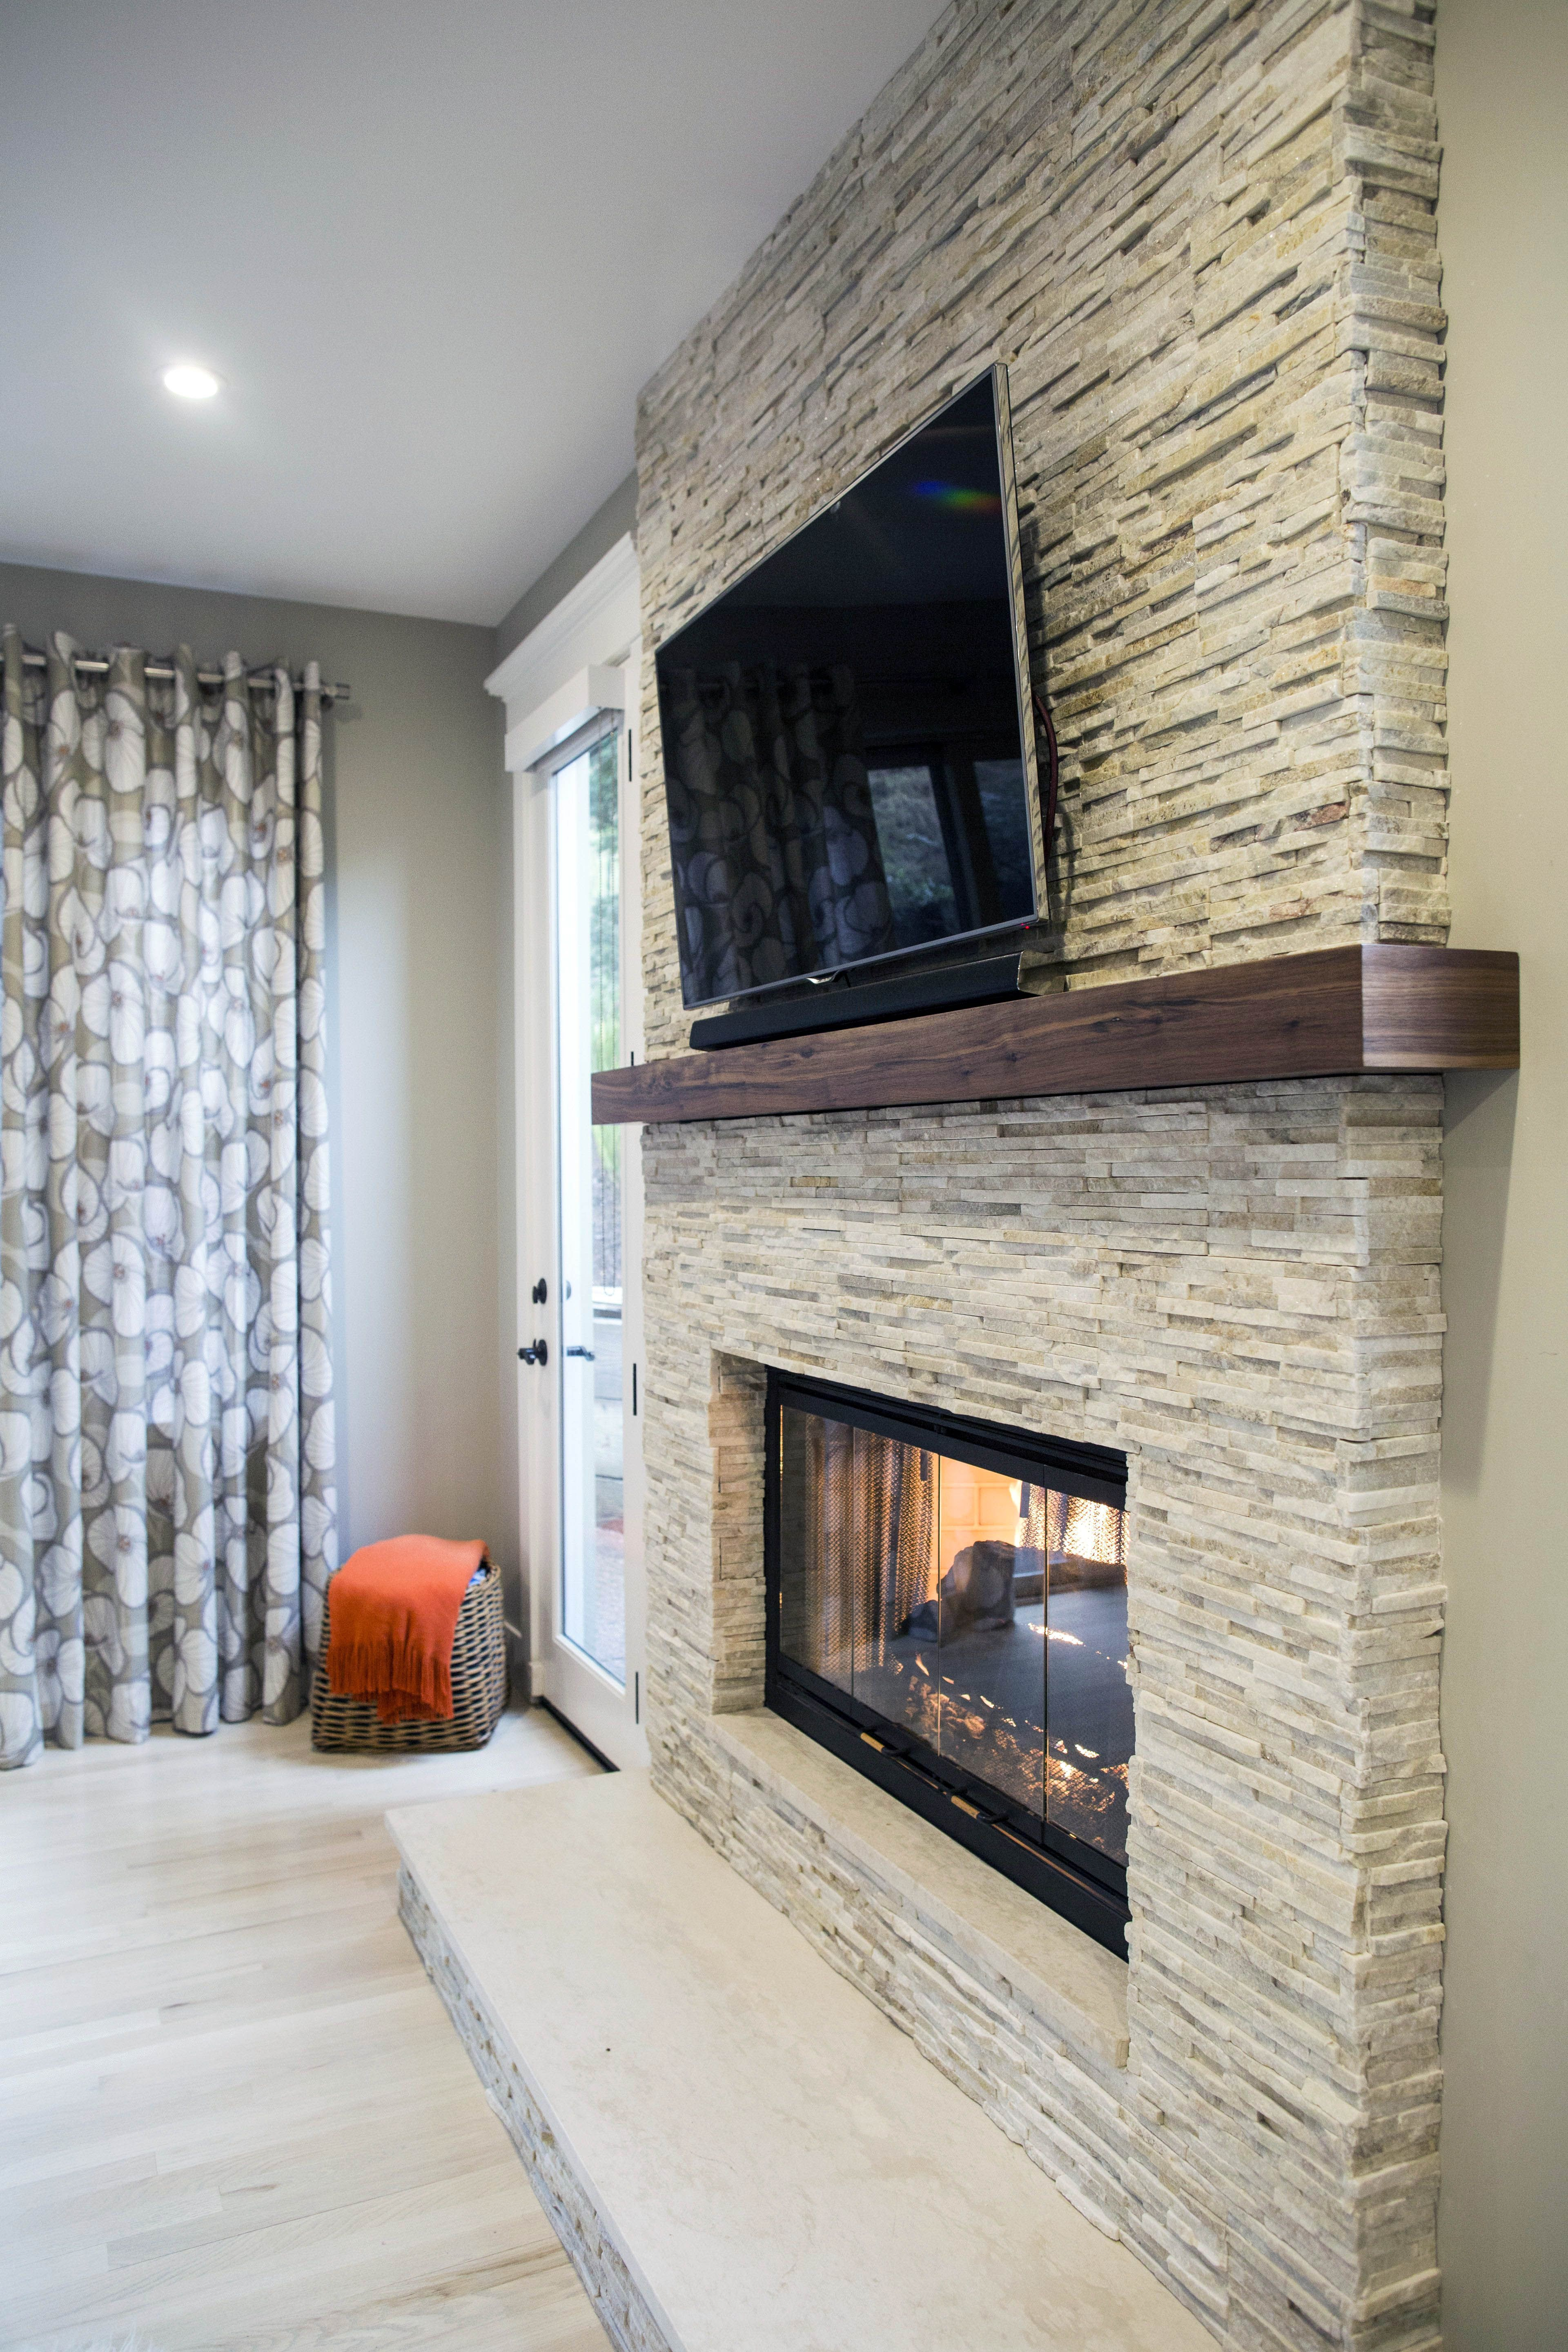 15 Fireplace Design Ideas For Room Warming Design Firep